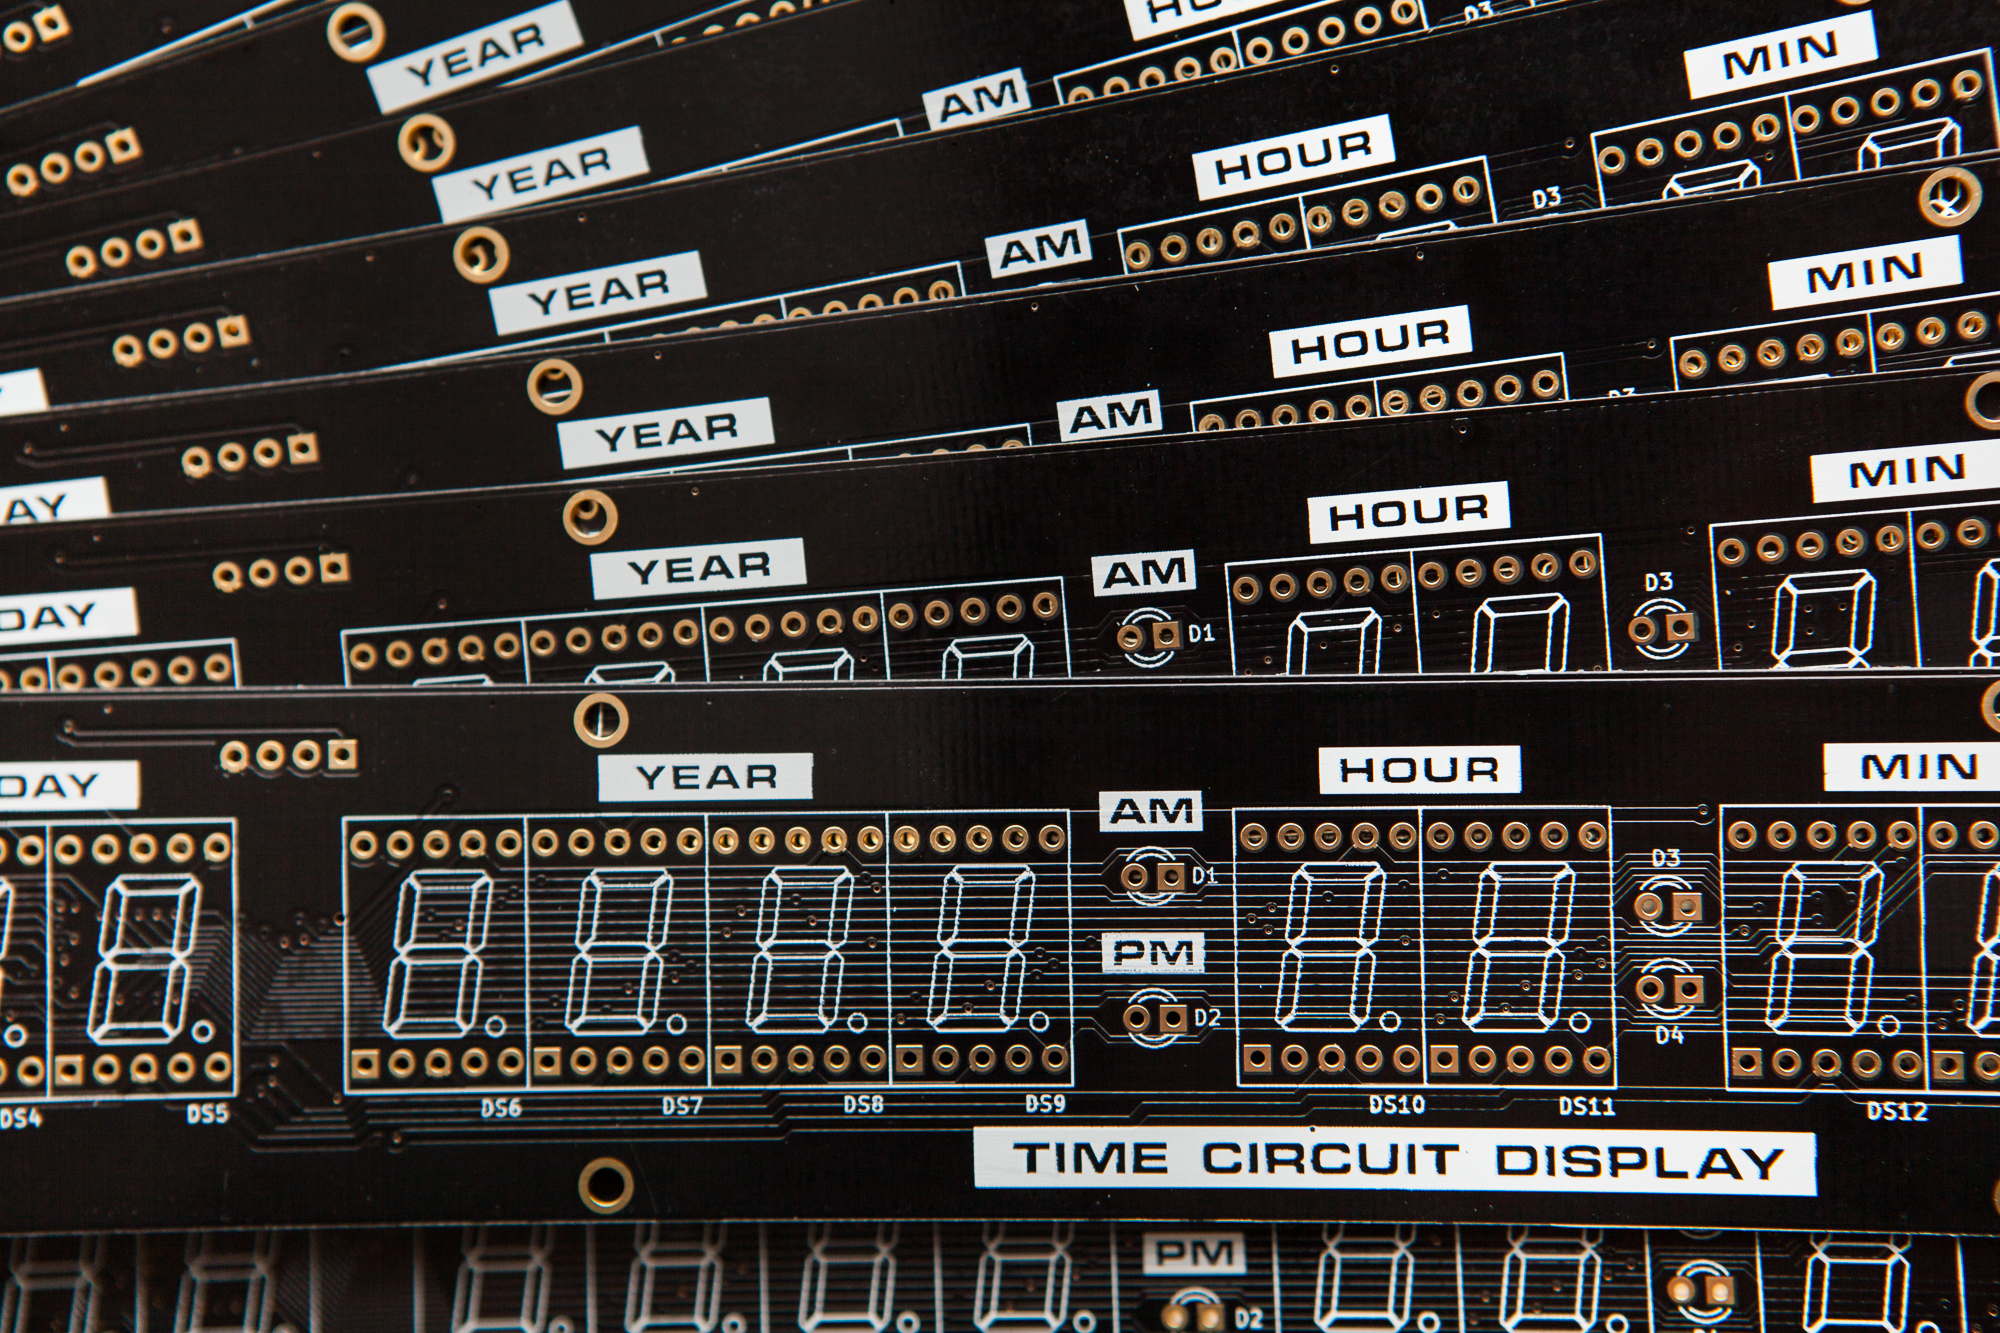 Assembling Time Circuit Display PCBs - Parts Not Included